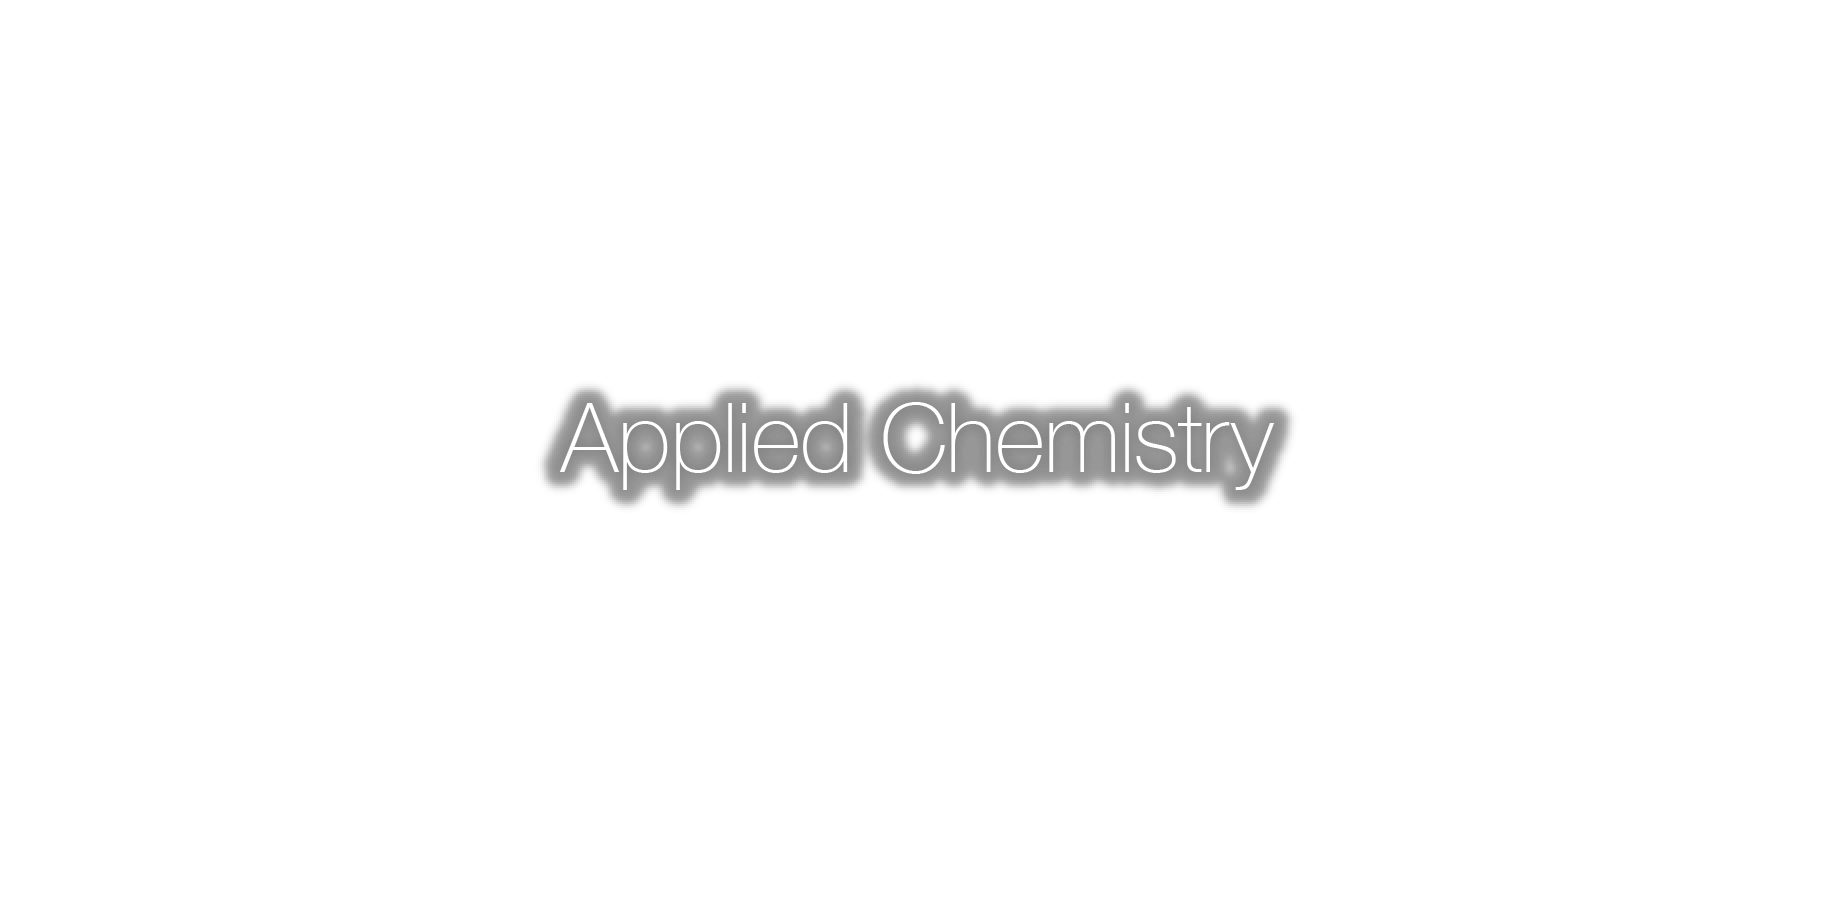 Environmental Applied Chemistry